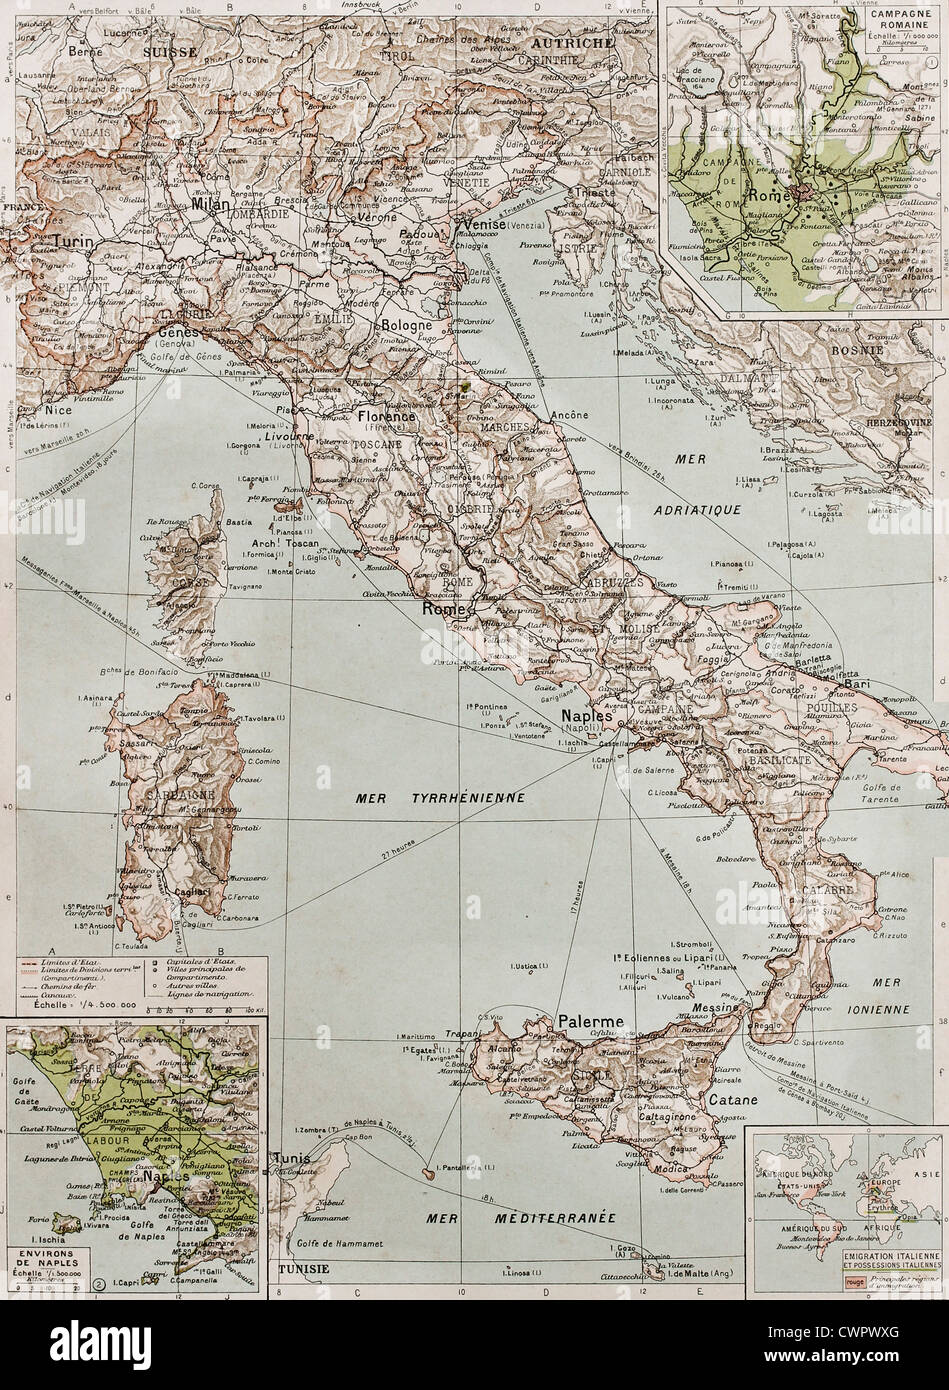 Italy at the end of 19th century - Stock Image